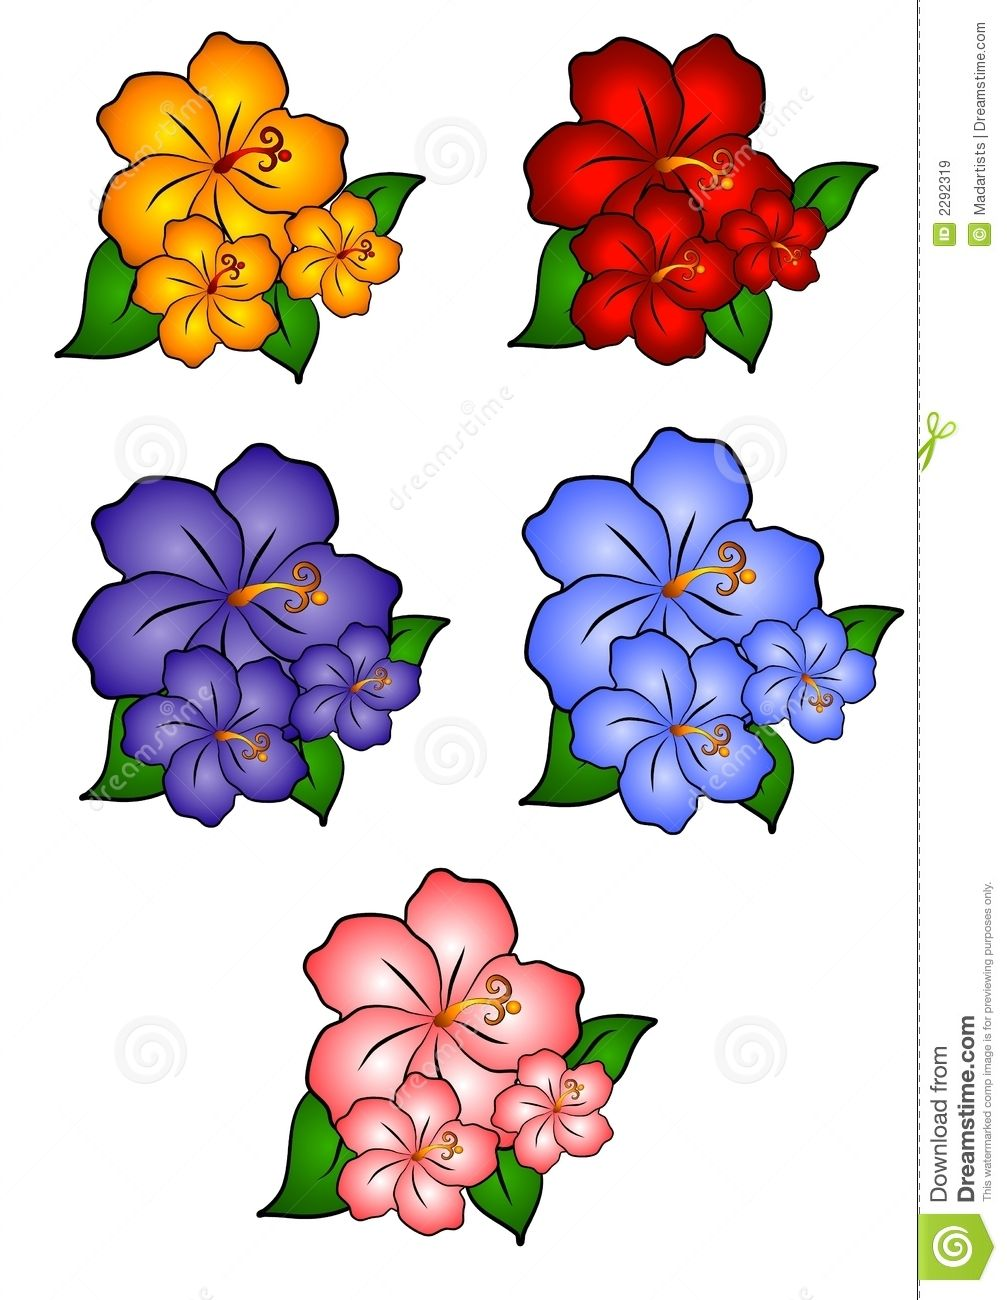 flower clip art free hawaiian flower border clip art 5 hawaiian rh pinterest com  free clip art images of spring flowers